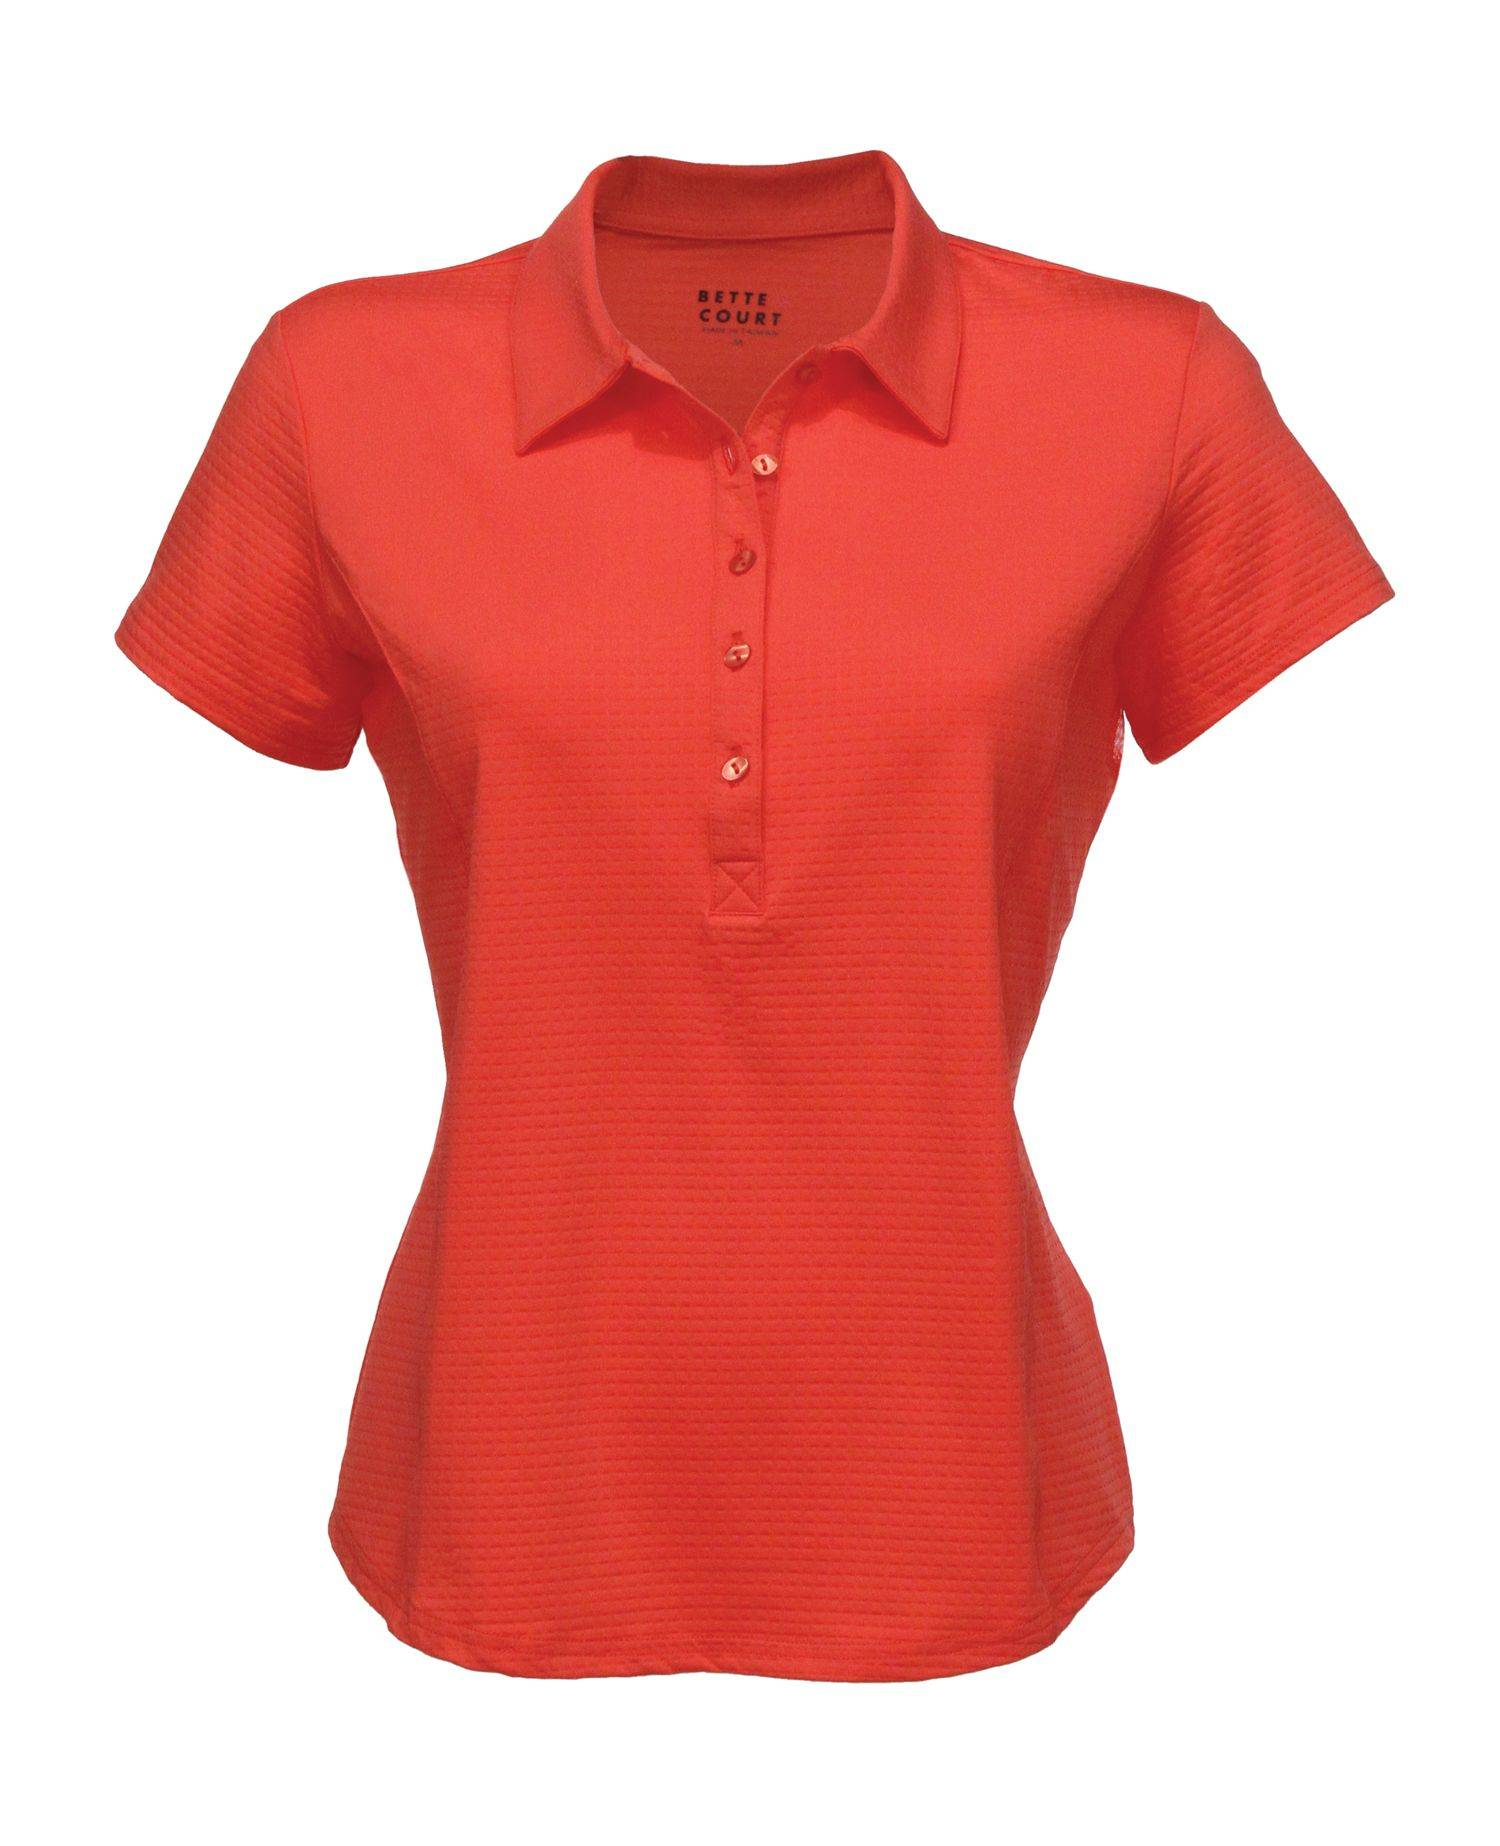 Bette & Court Cool Elements Polo - Ladies, Short Sleeve